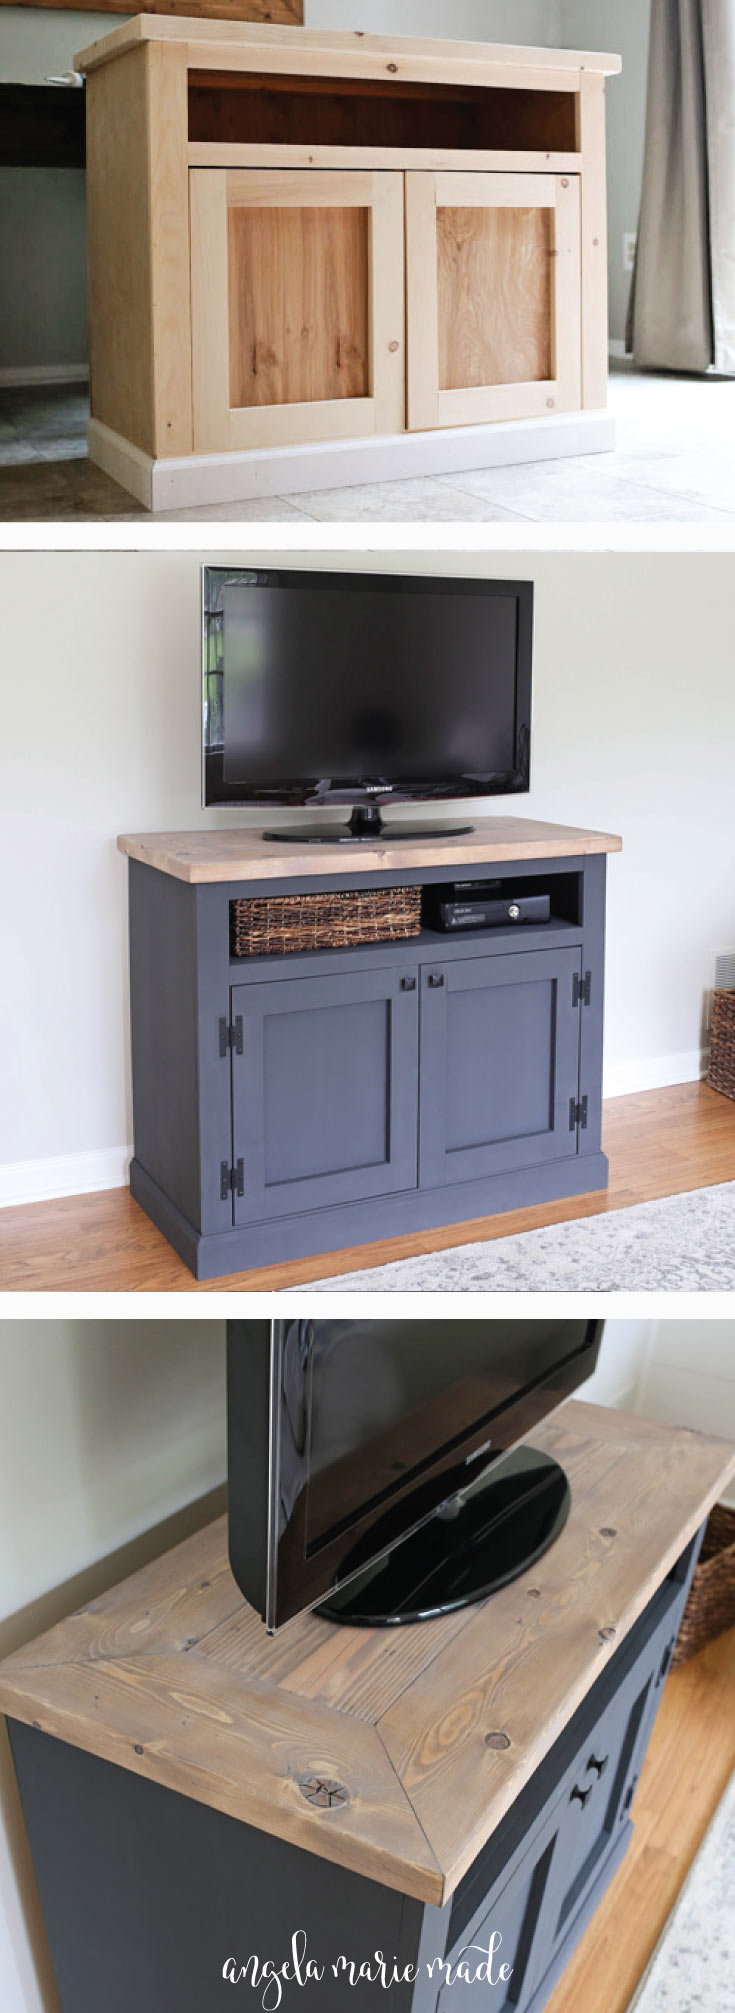 diy rustic tv stand media console pin1a angela marie made. Black Bedroom Furniture Sets. Home Design Ideas